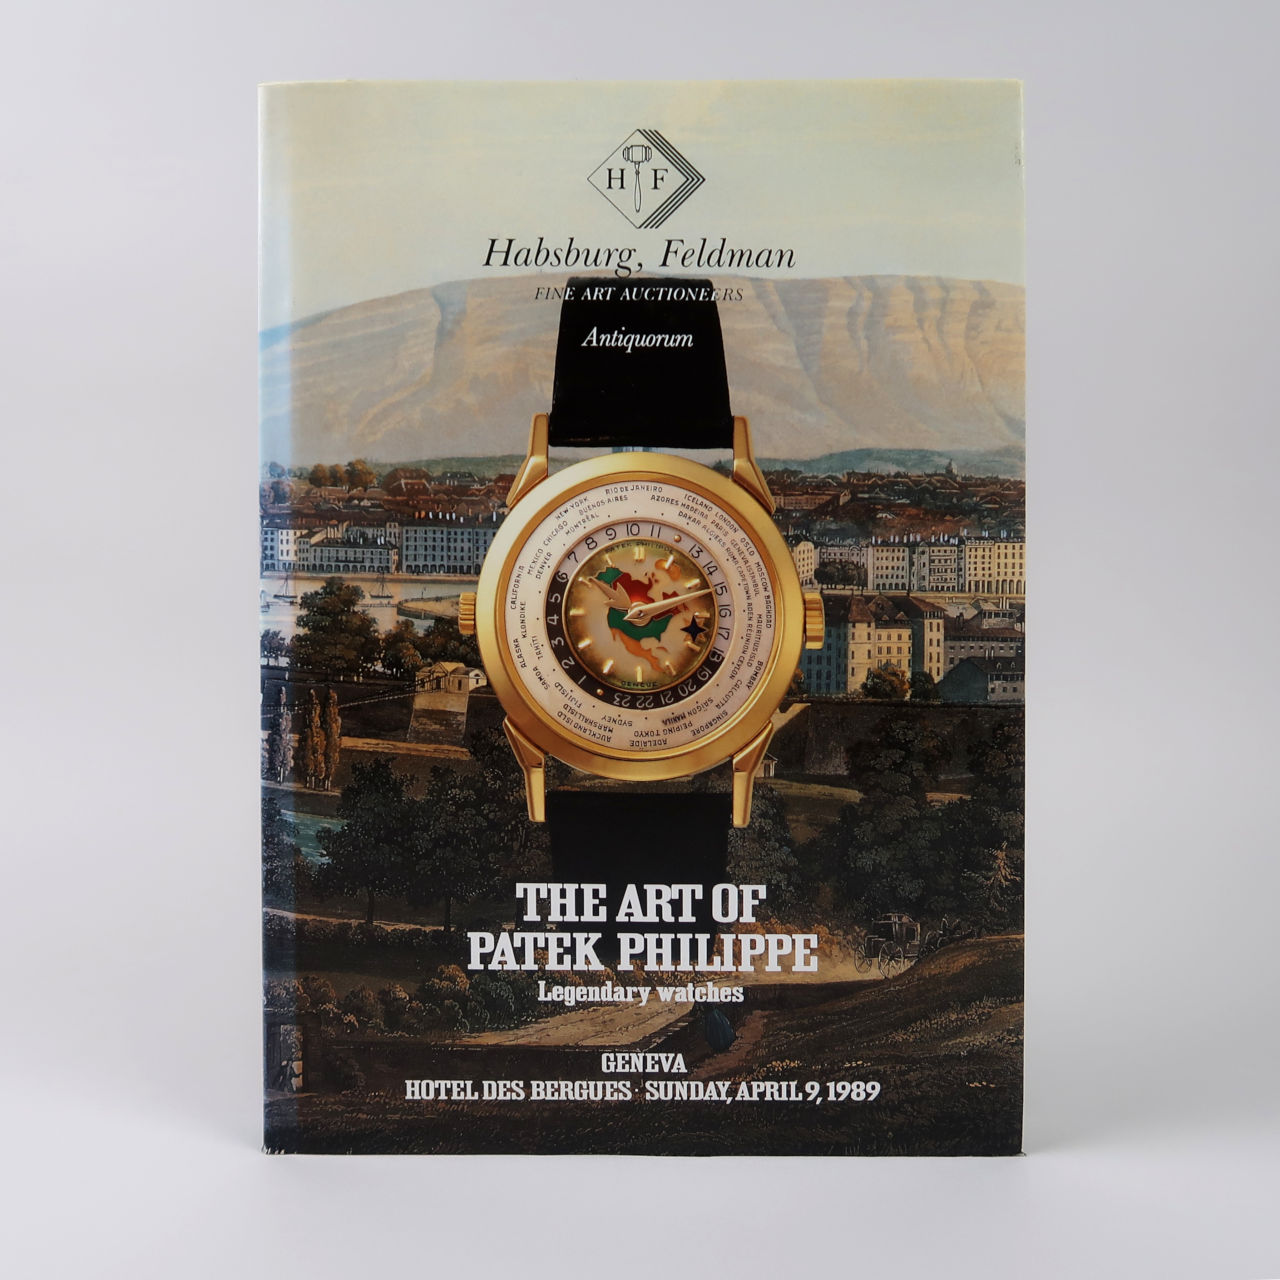 The Art of Patek Philippe - Legendary Watches, Hapsburg Feldman Auctioneers April 9th, 1989